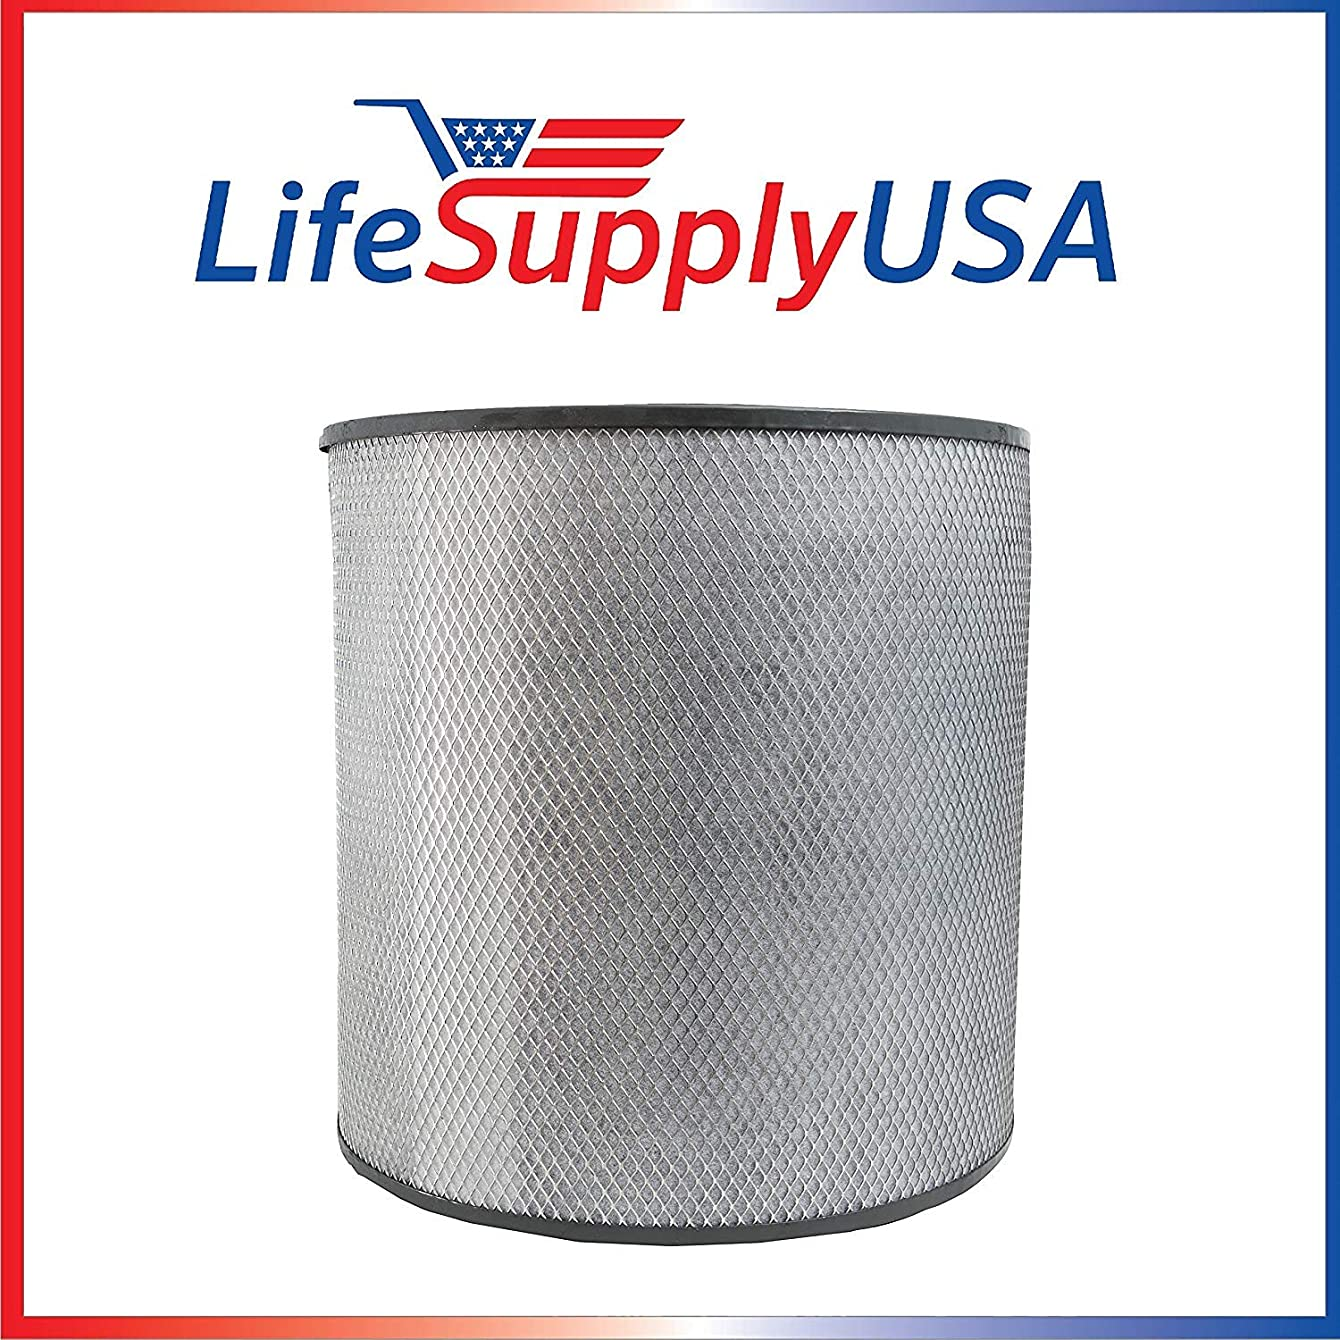 LifeSupplyUSA Replacement Filter for Austin Air HM 400 HealthMate HM-400 HM400 FR400